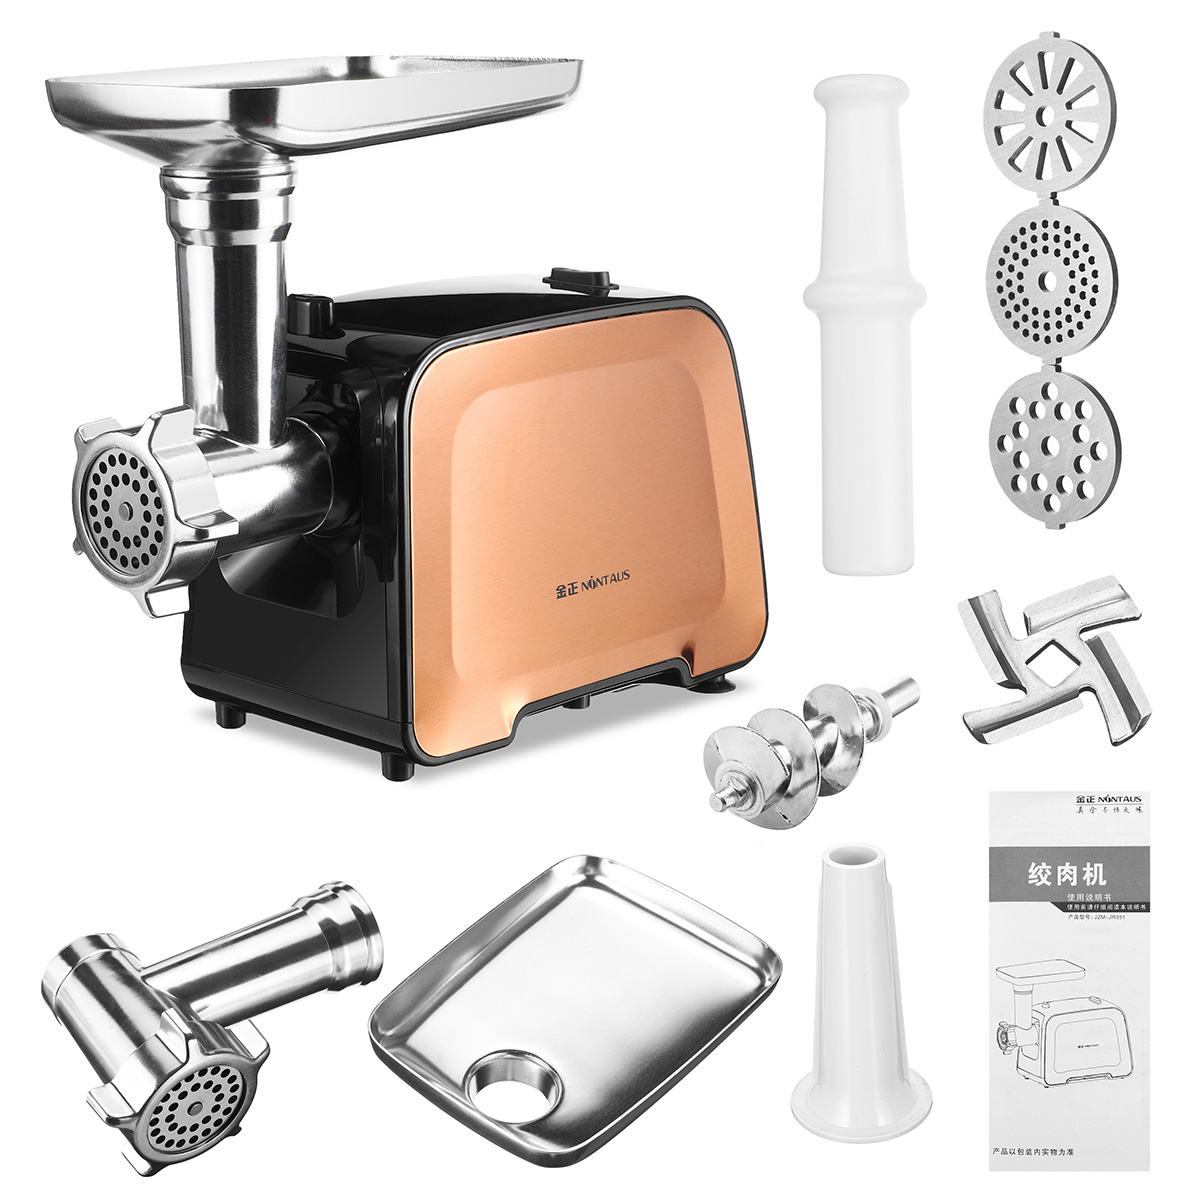 NONTAUS Brand 100% 3000W Electric Meat Grinder Stainless Steel Multifunction Food Chopper Sausage Stuffer Appliance For Kitchen